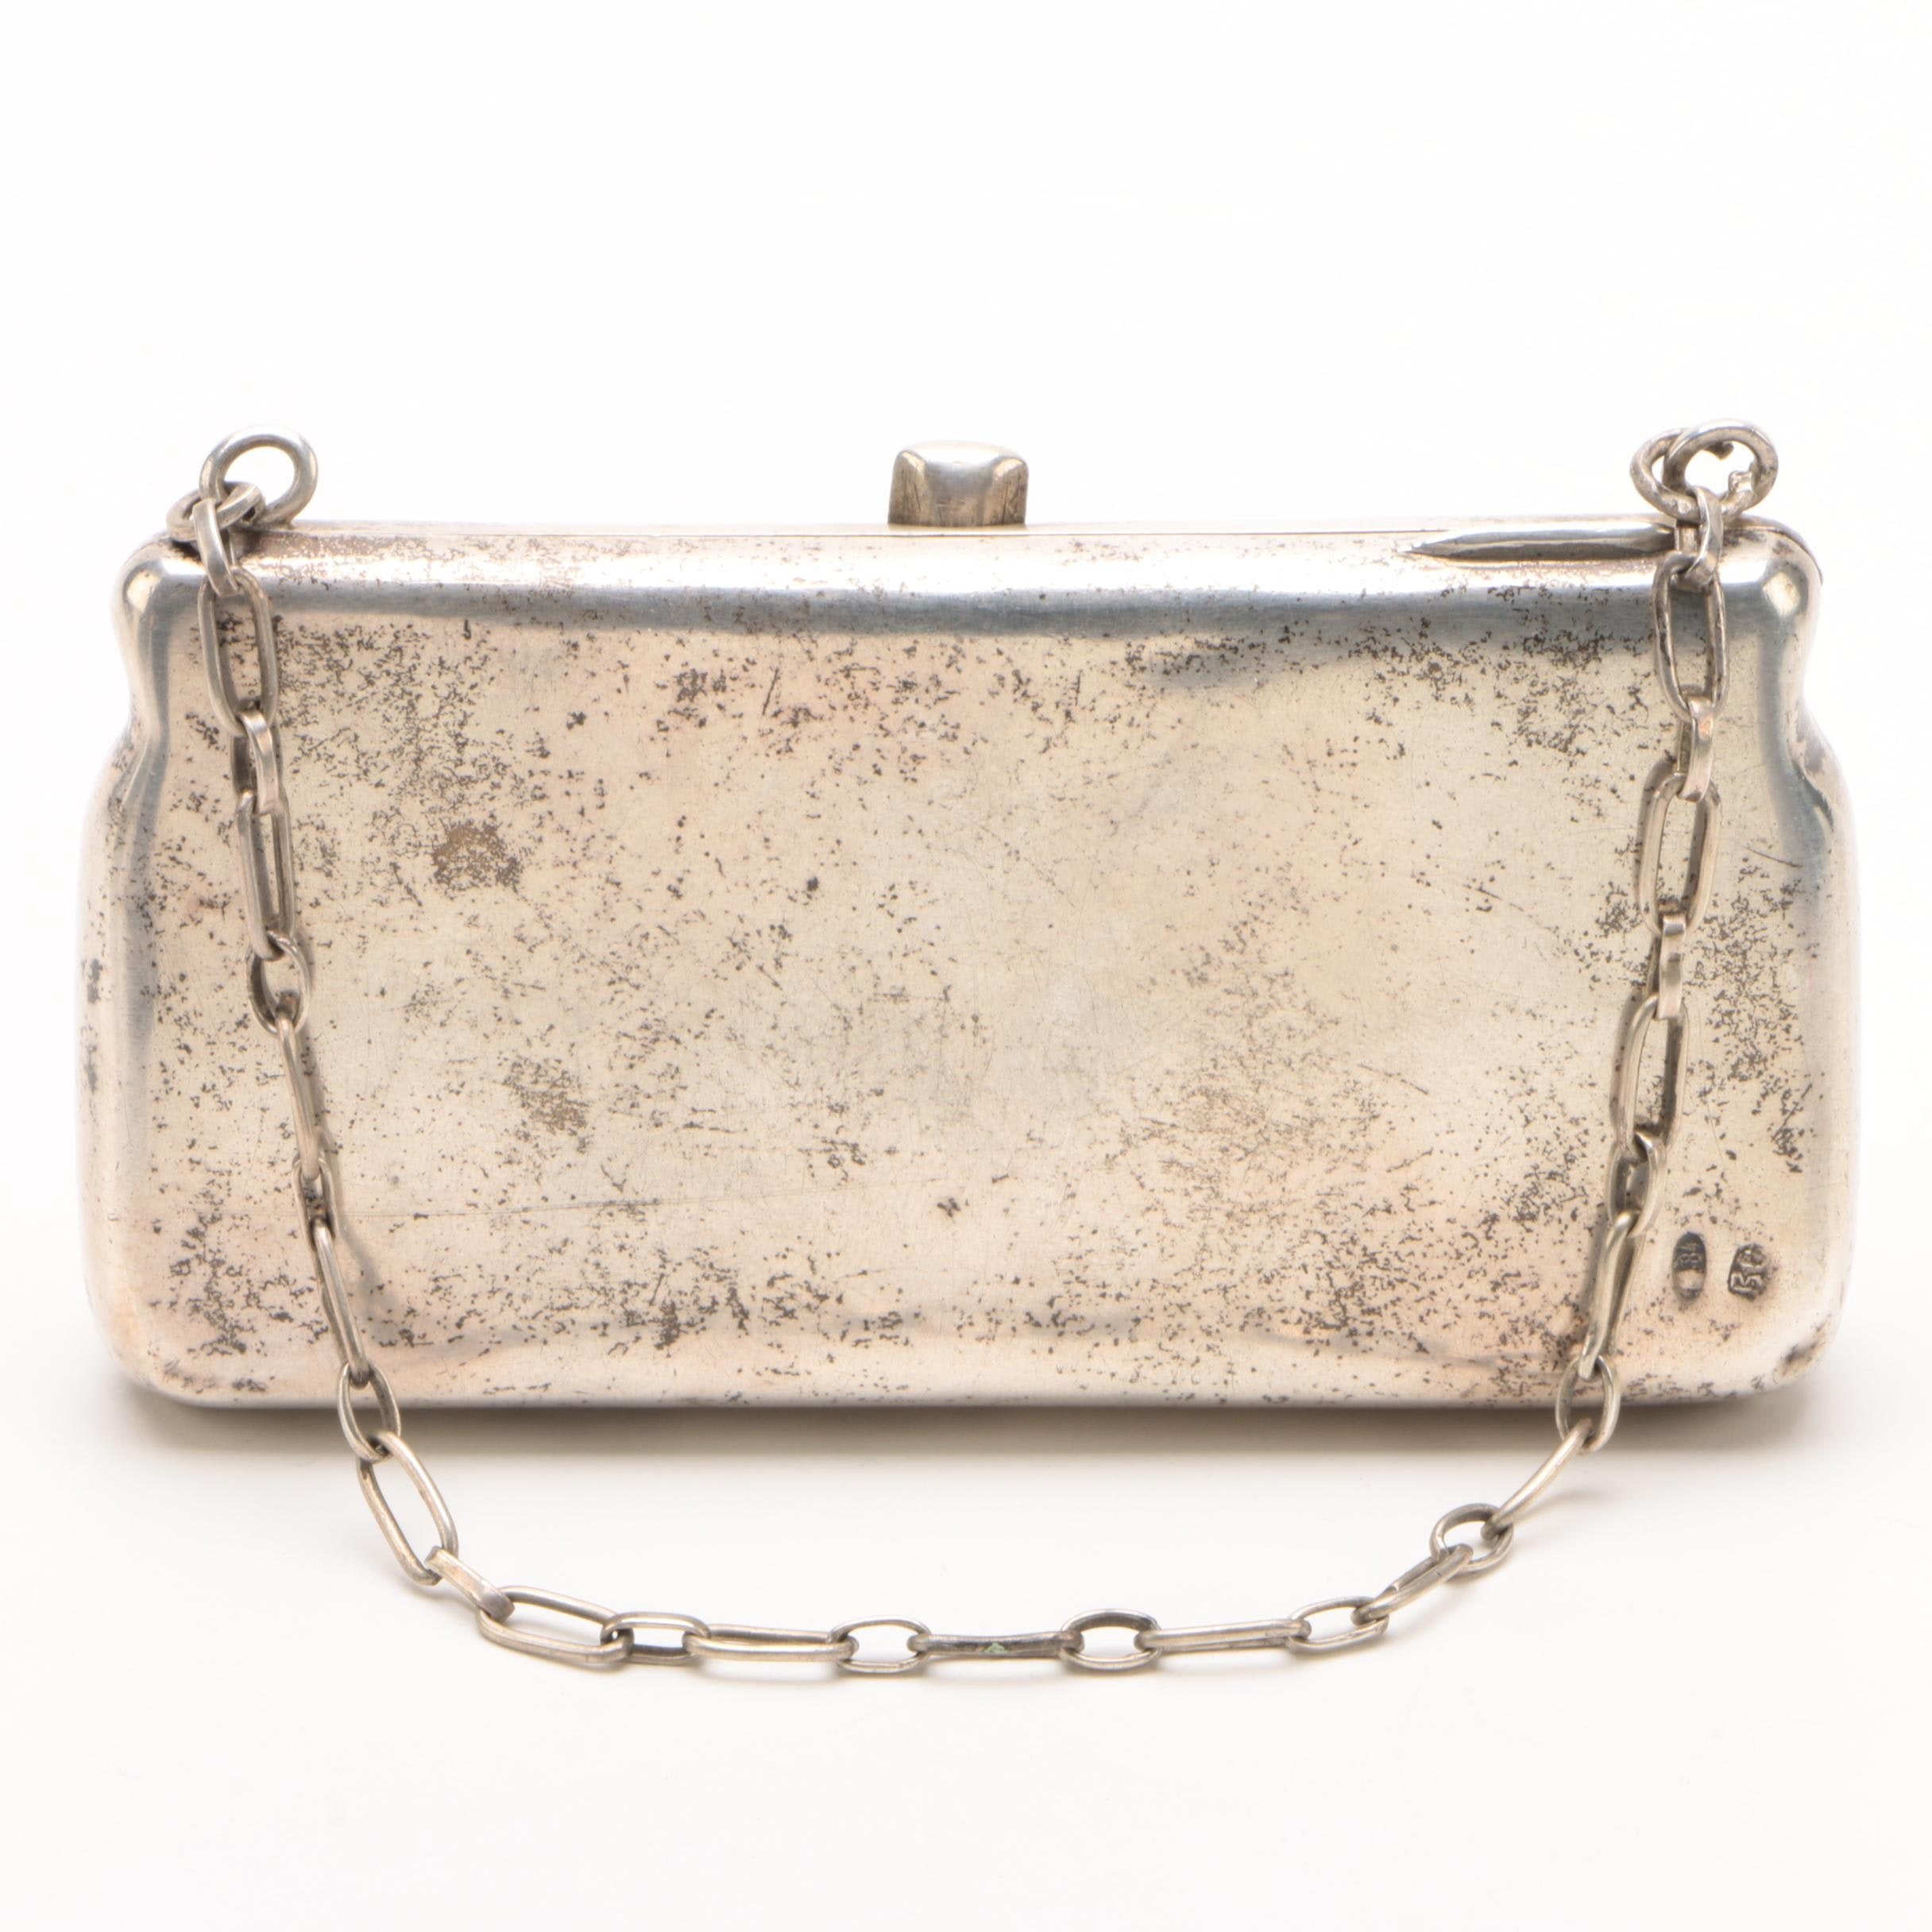 Russian 875 Silver Purse, Early 20th Century